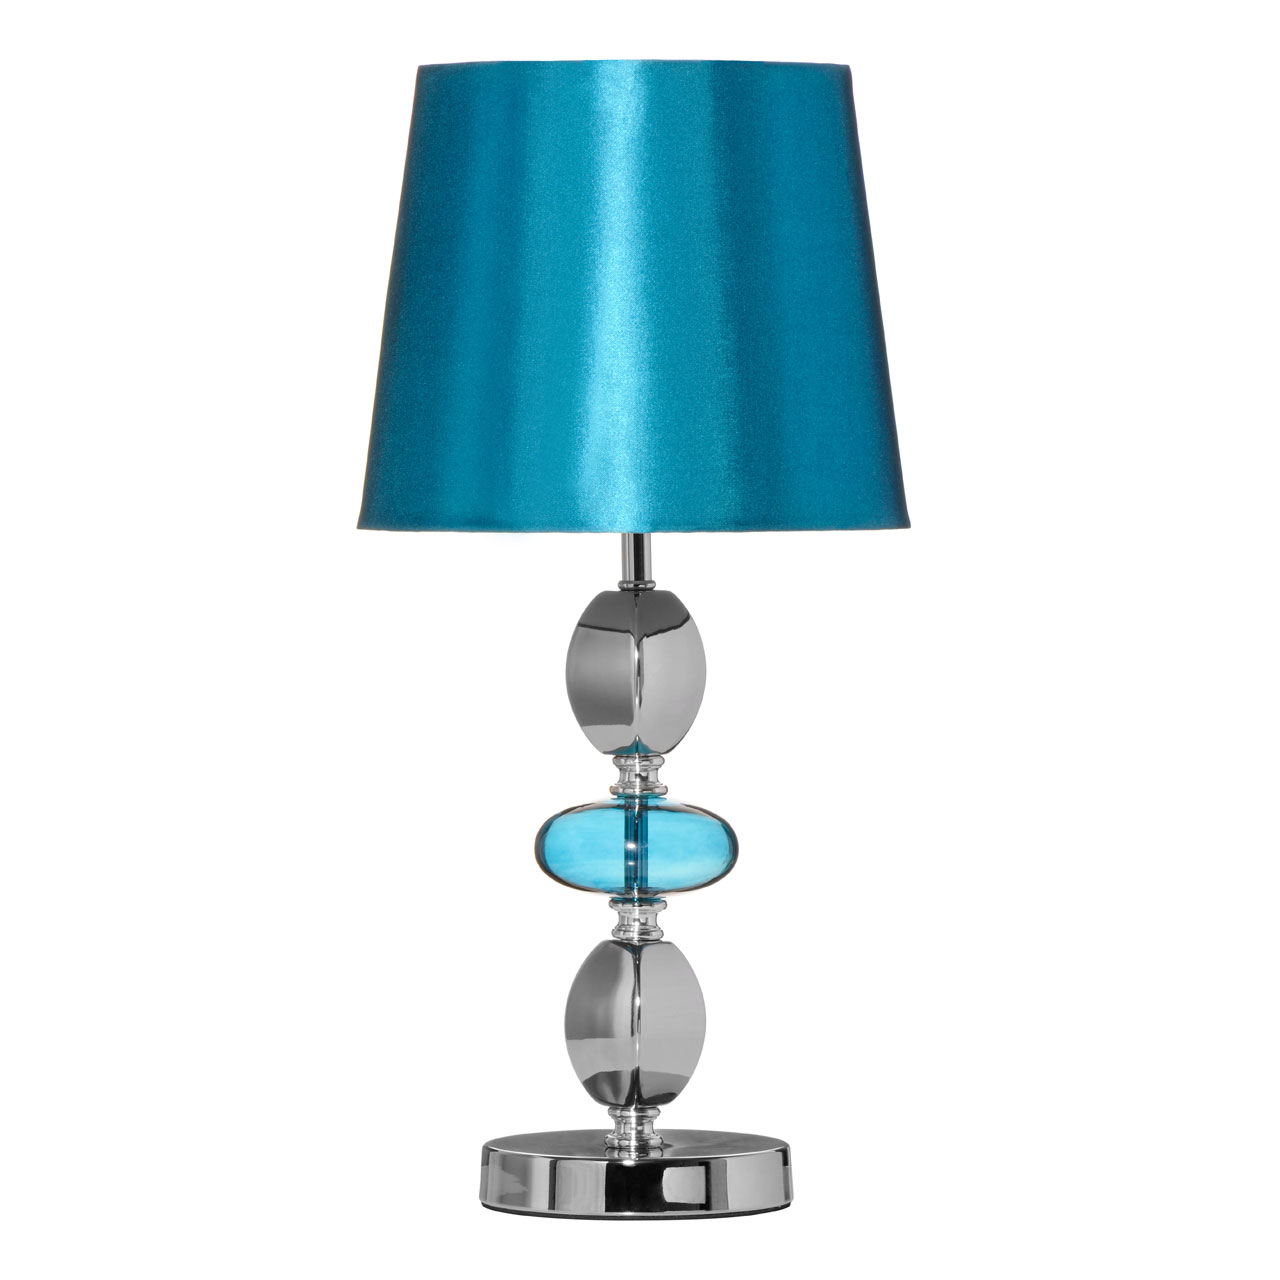 Isabella teal glass pebble table desk lamp fabric shade modern isabella teal glass pebble table desk lamp fabric shade modern bedside light aloadofball Images